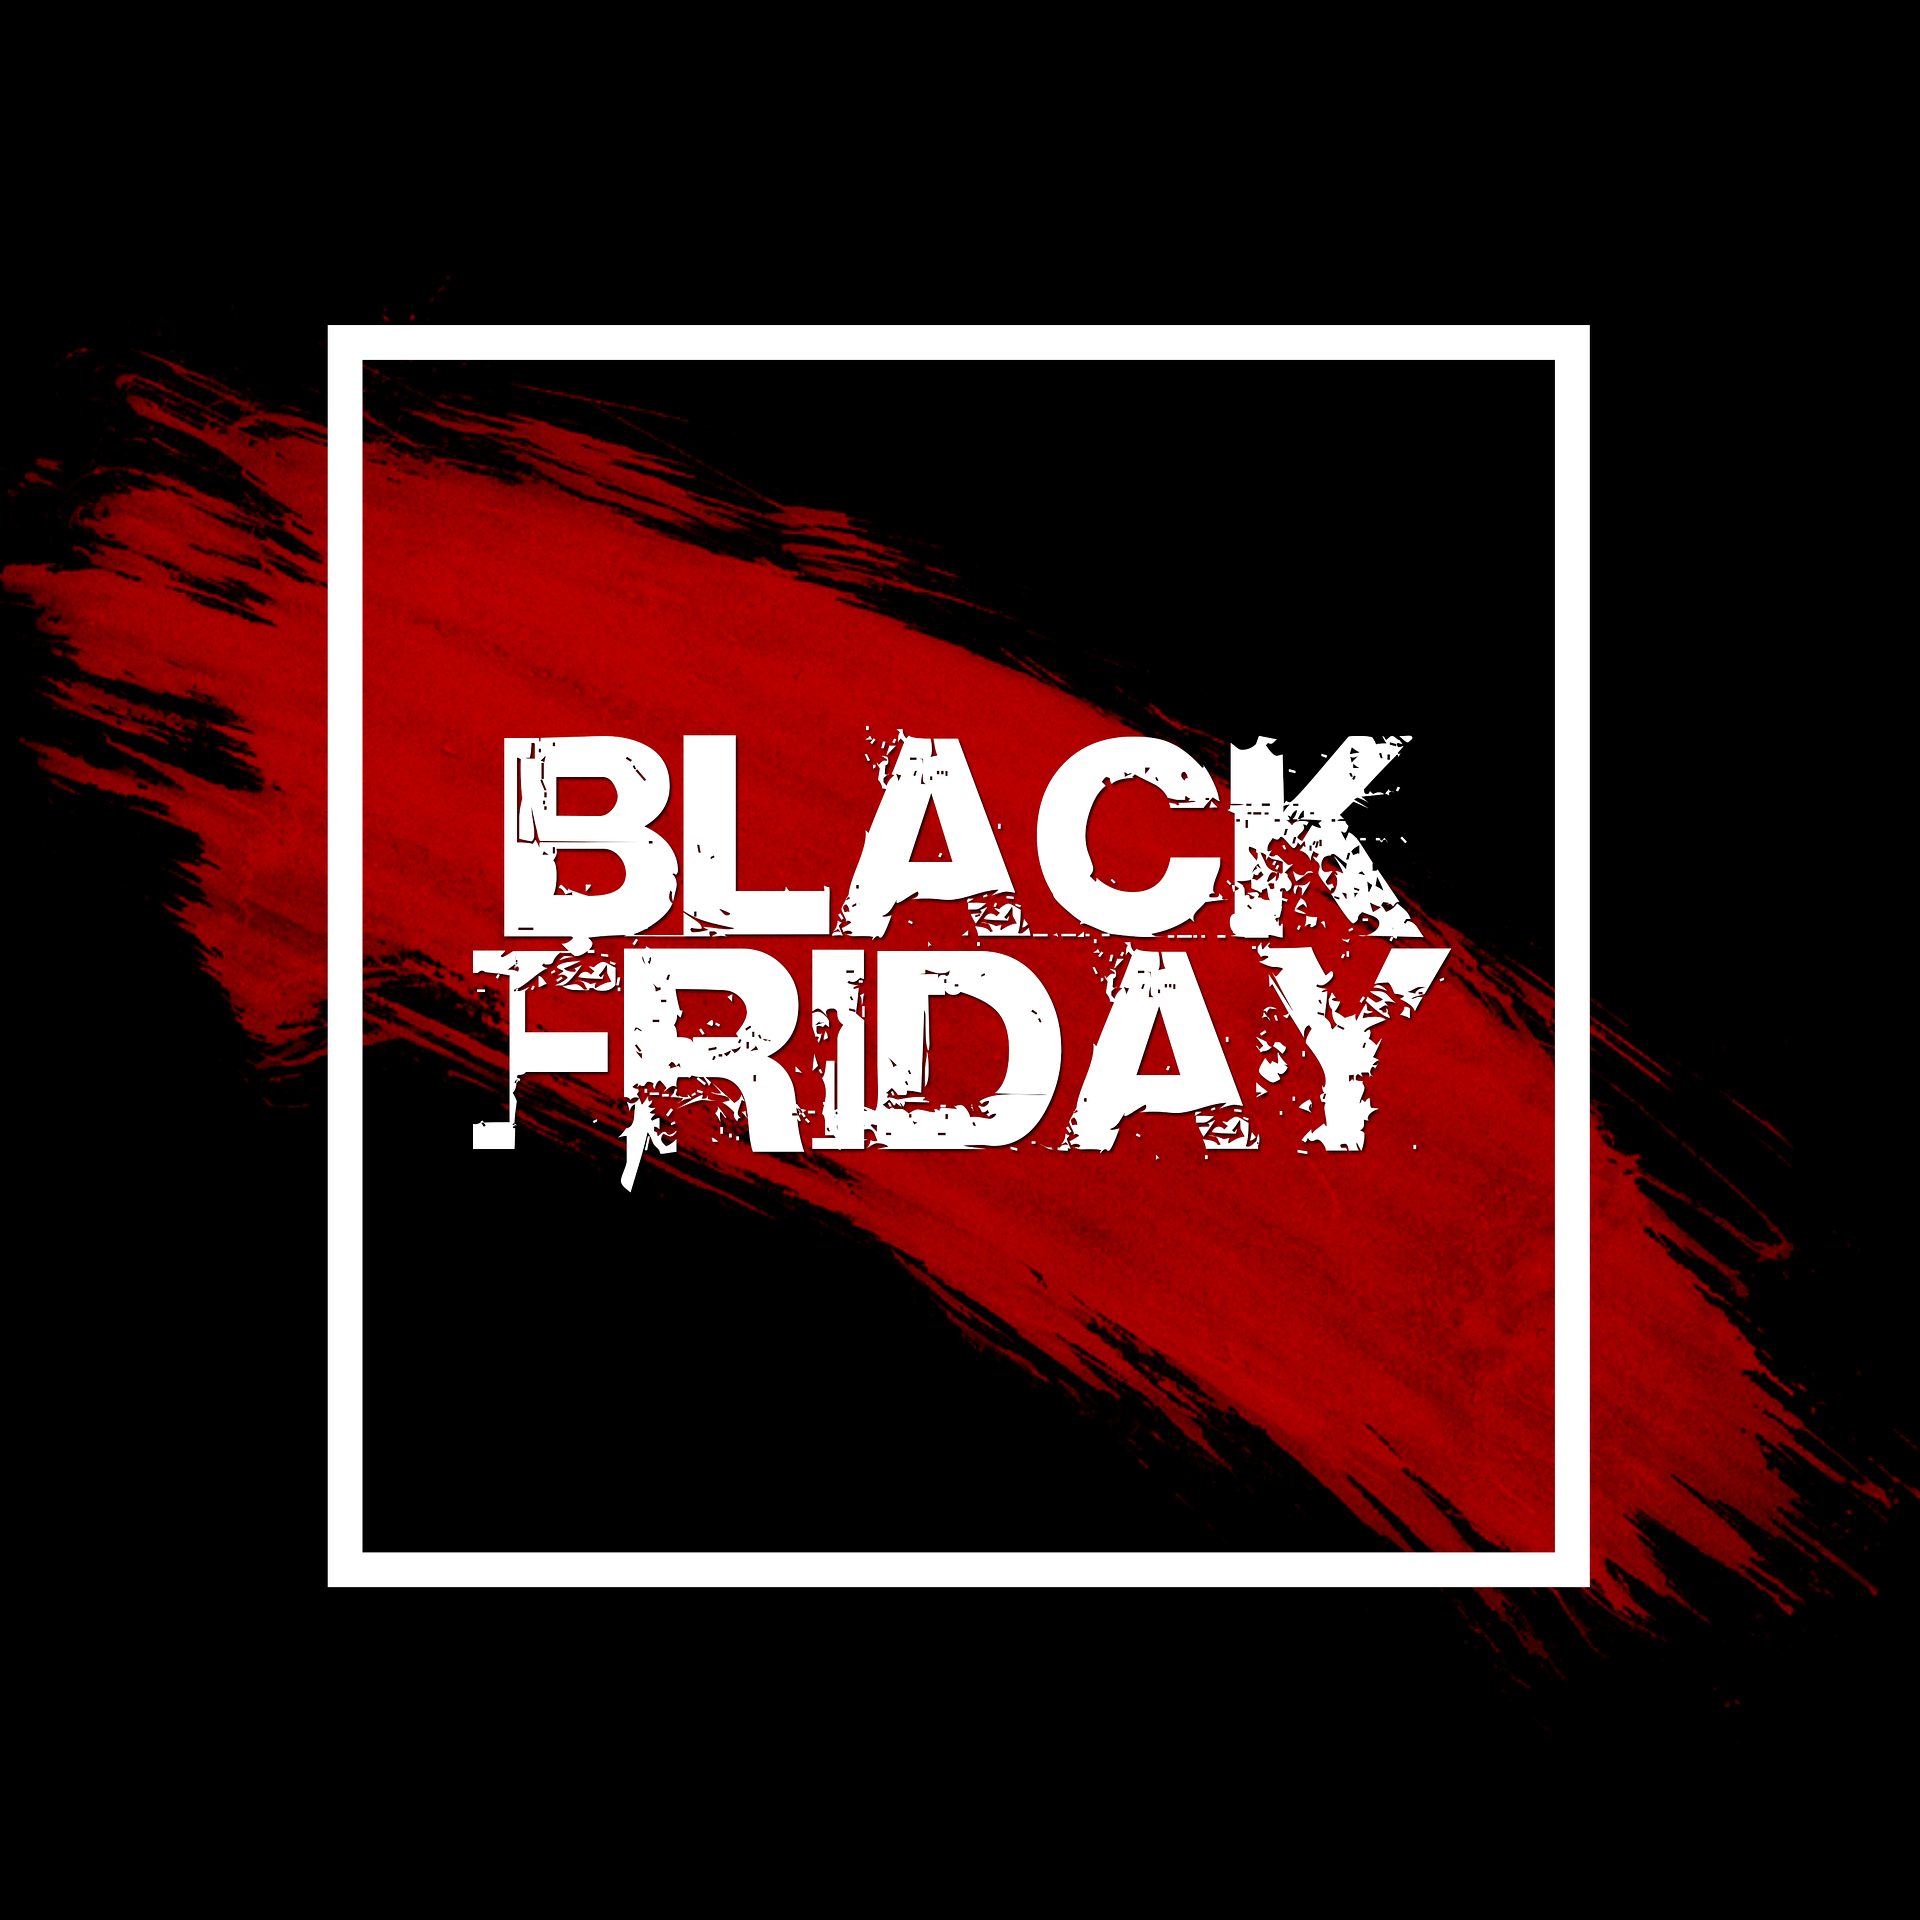 black friday 2901748 1920